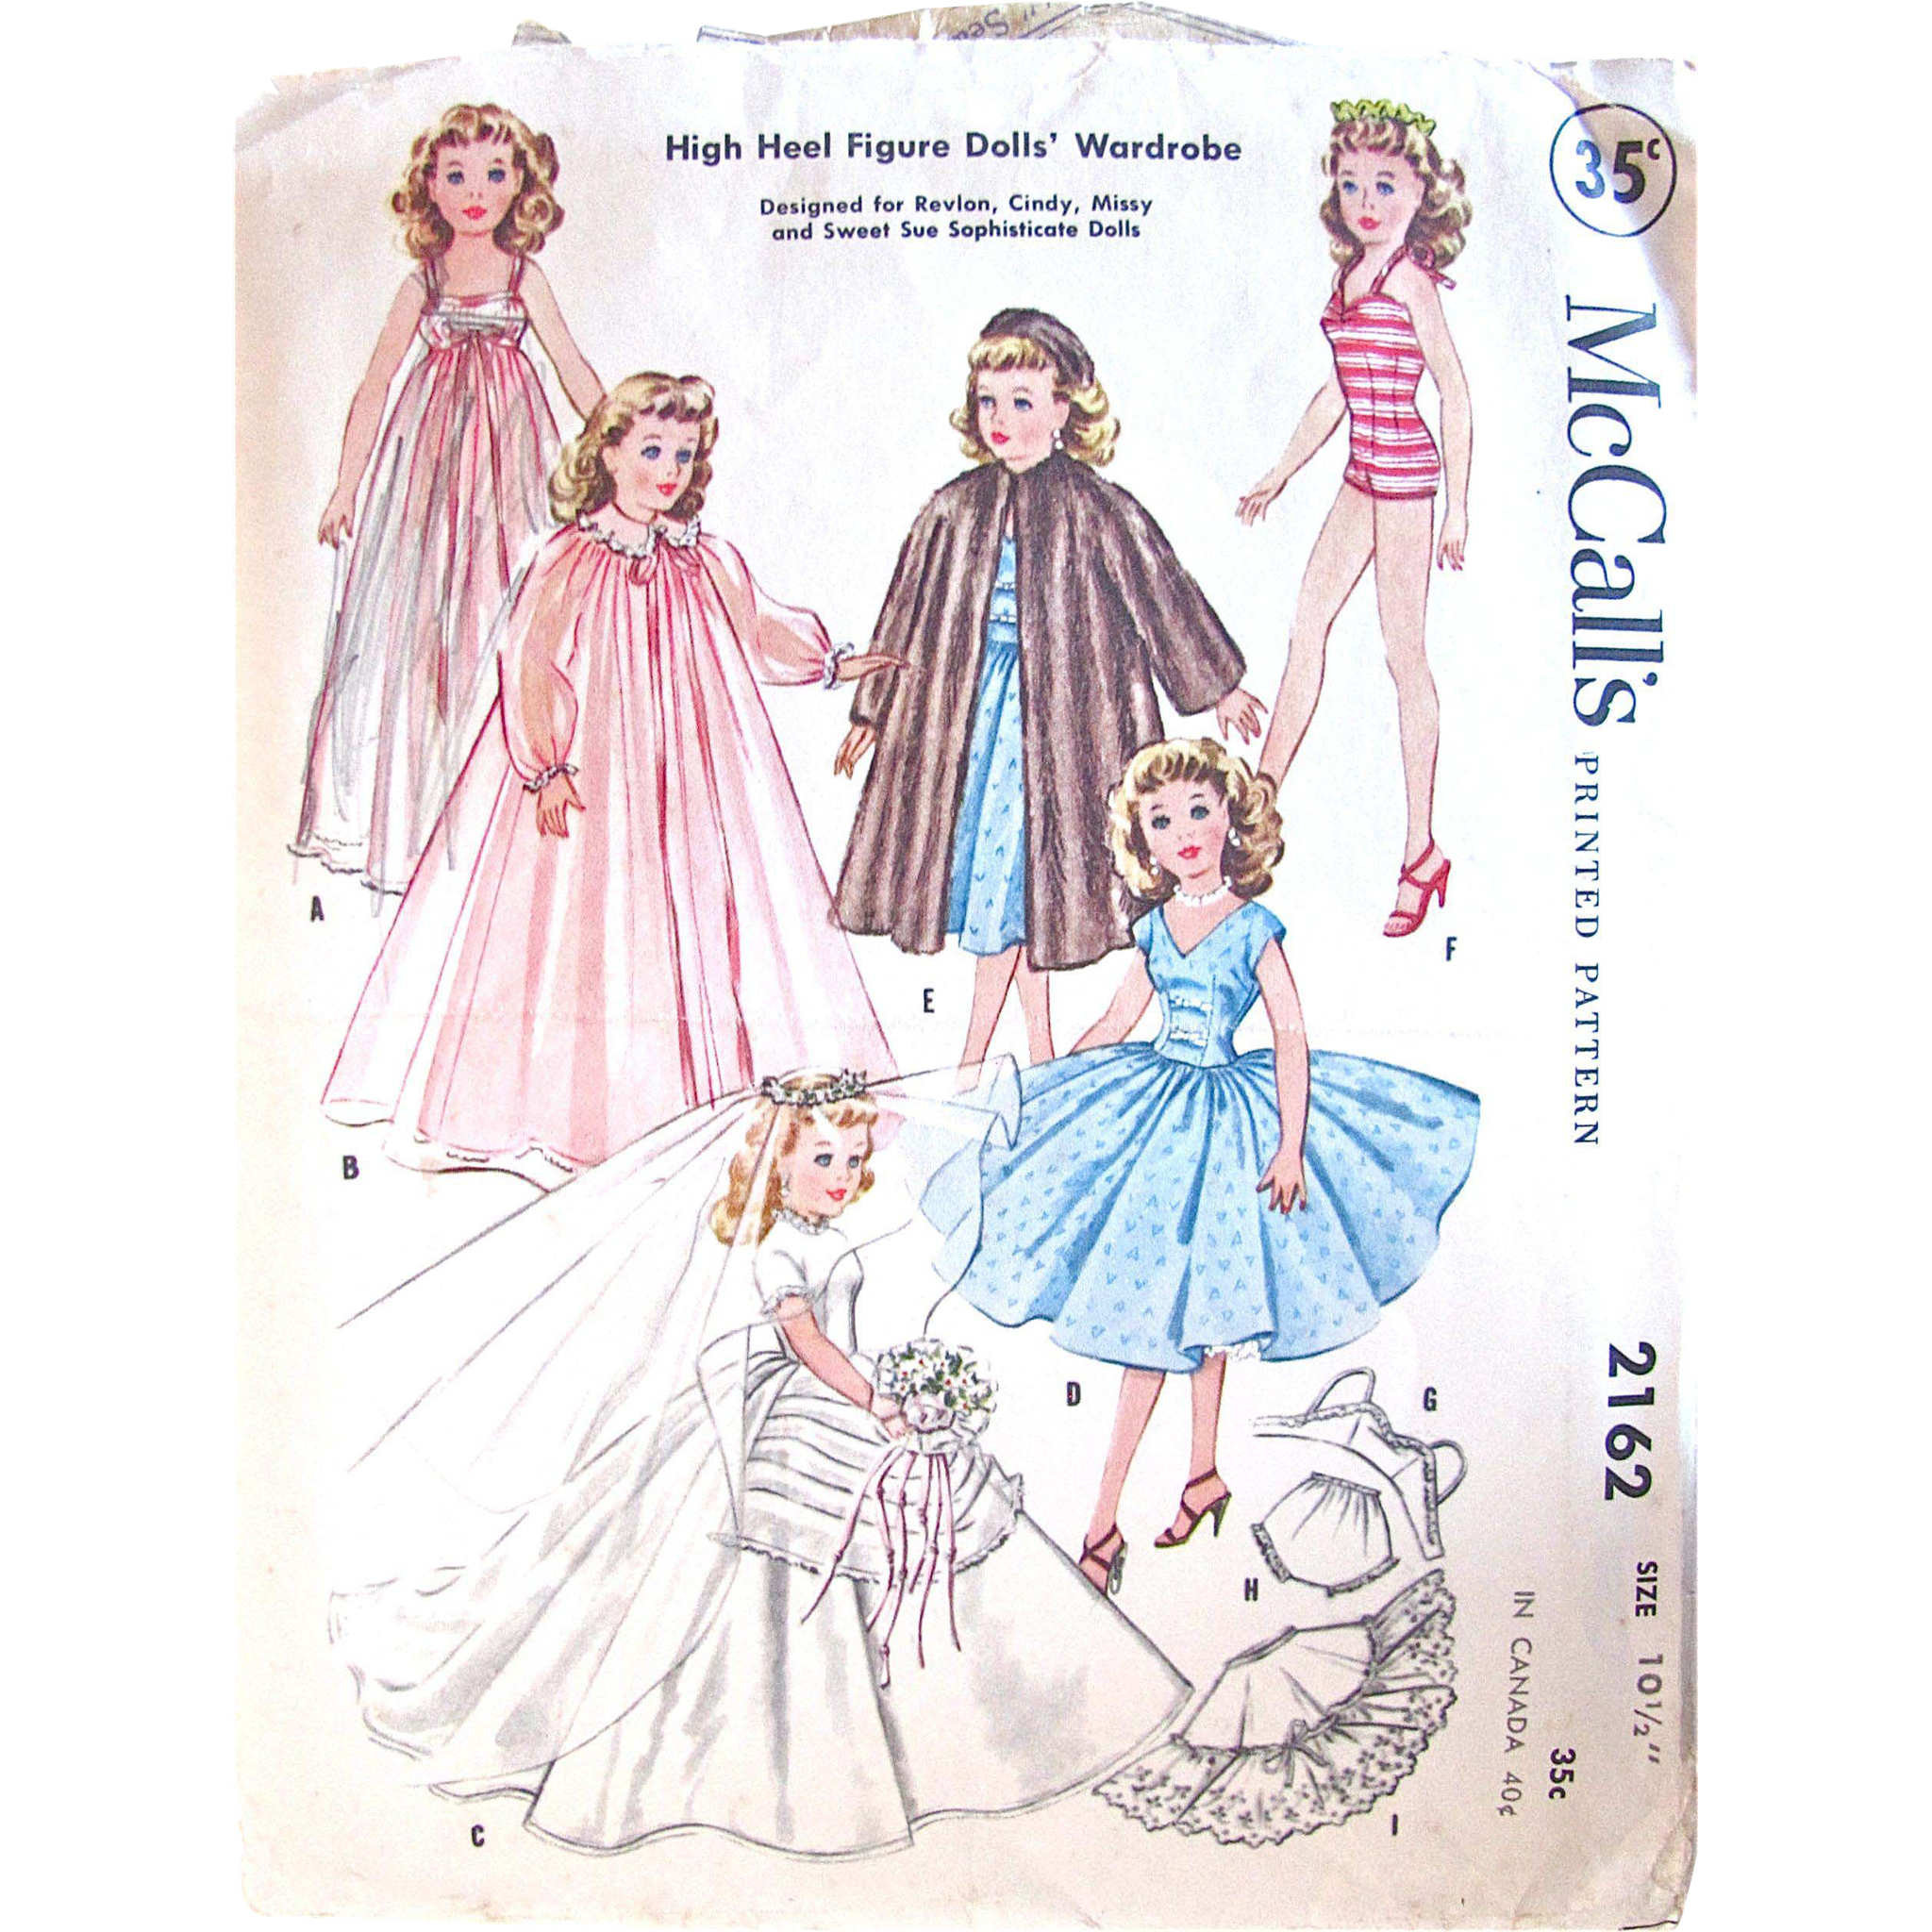 Little Miss Revlon Dolls Wardrobe Pattern, McCall's 2162, Vintage 1957, Complete, Size 10-1/2 Inch, Fits High Heel Figure Dolls, Cindy, Toni